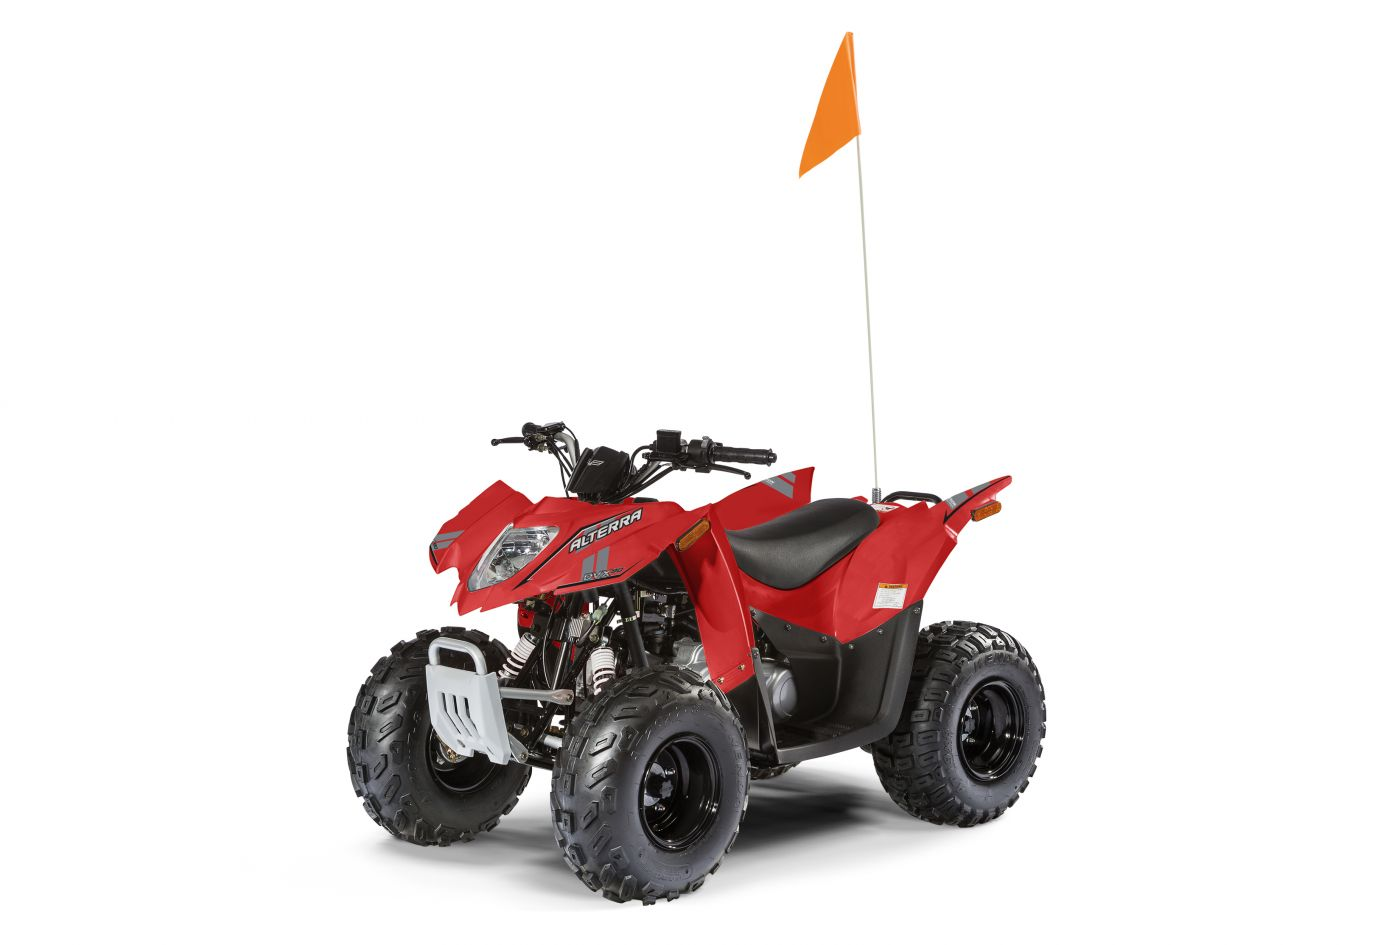 Arctic Cat DVX 90 for sale at G5 Outdoor in Plant City Florida : G5 ...